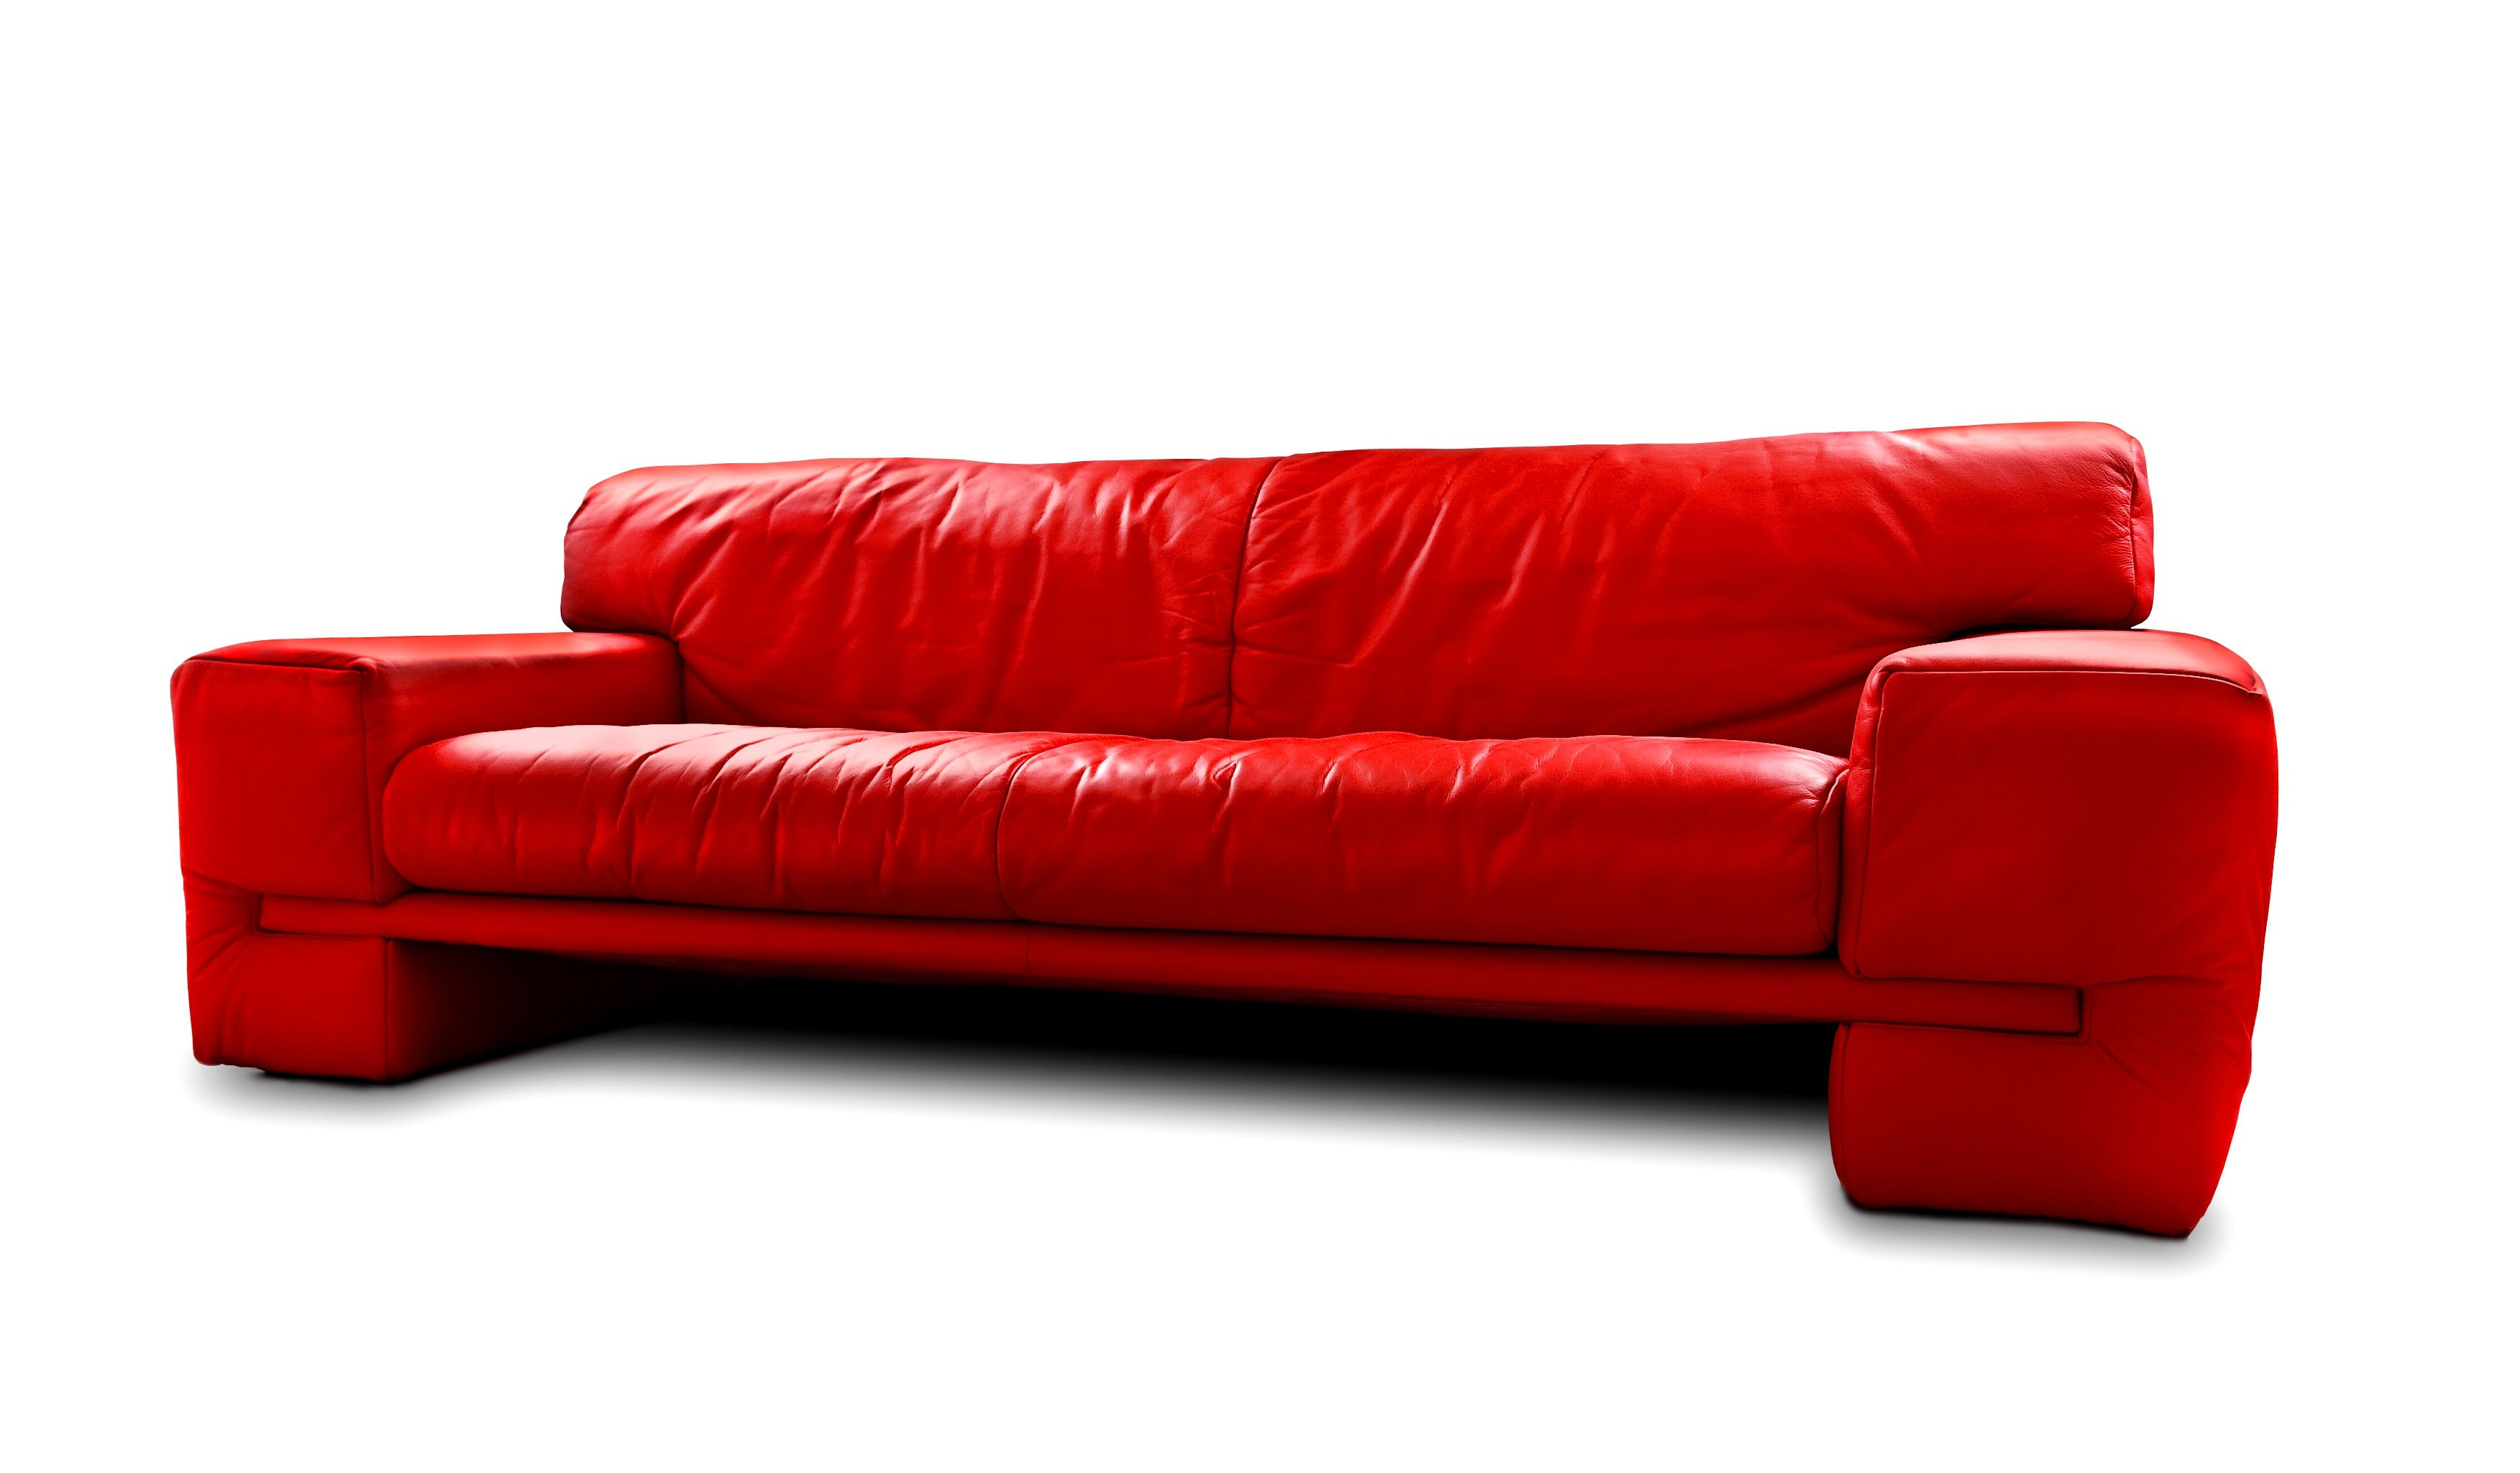 Red Furniture Ideas Stylish Red Sofa Literary Wallpaper Modern Sofa Design